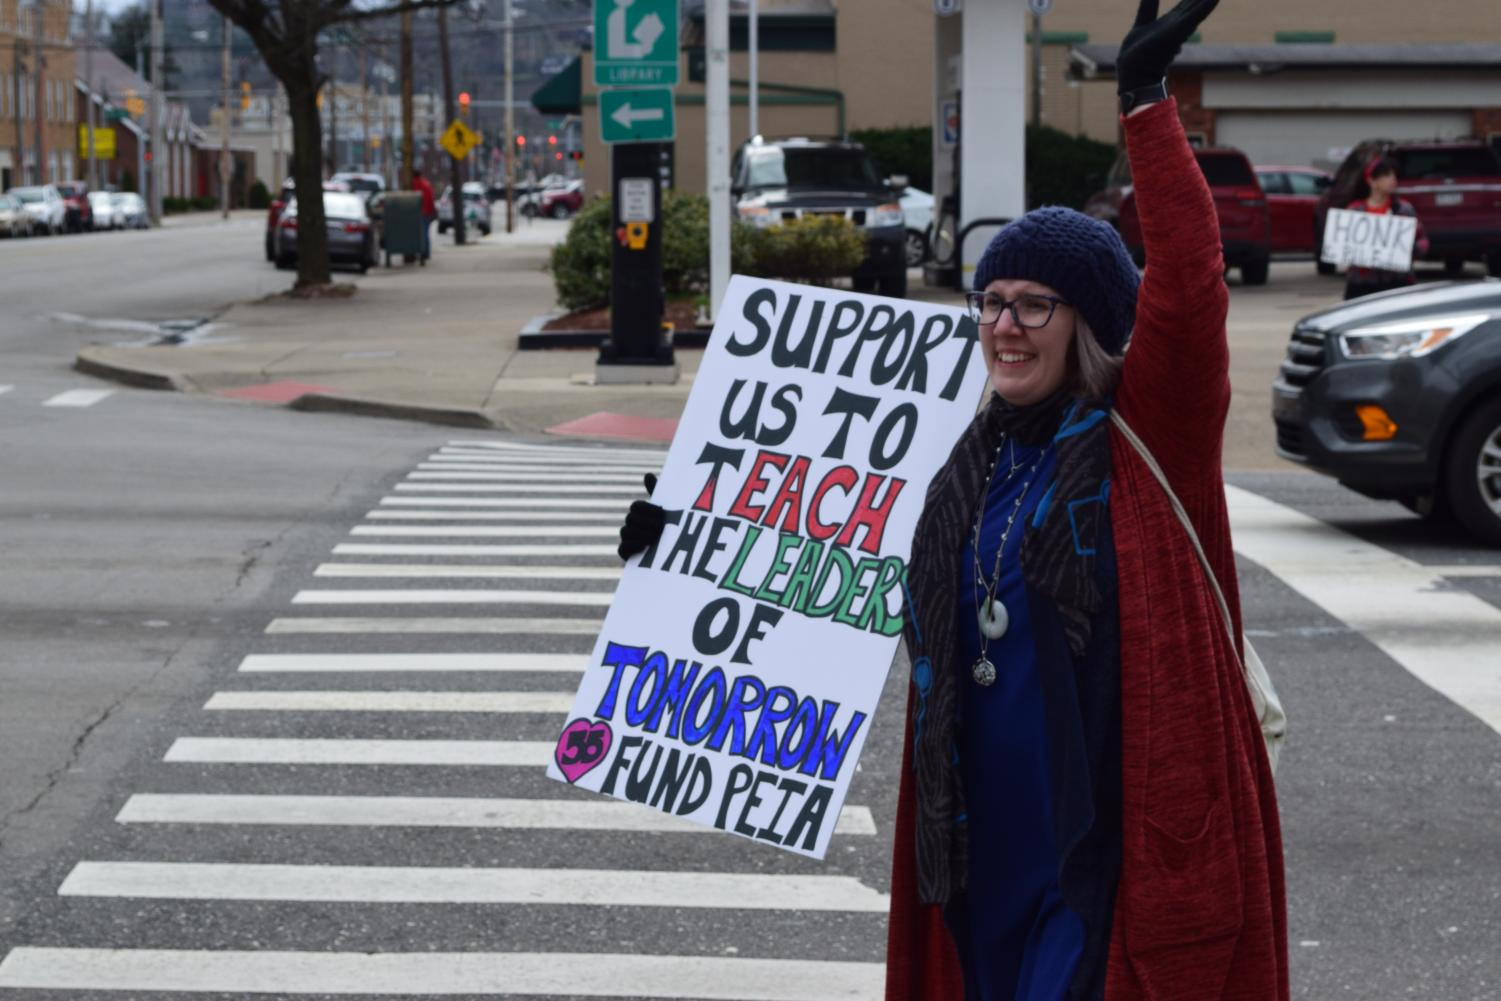 Teachers outside on 5th Avenue of Huntington, West Virginia holding signs calling for increased pay raises and lower deductibles and insurance rates.